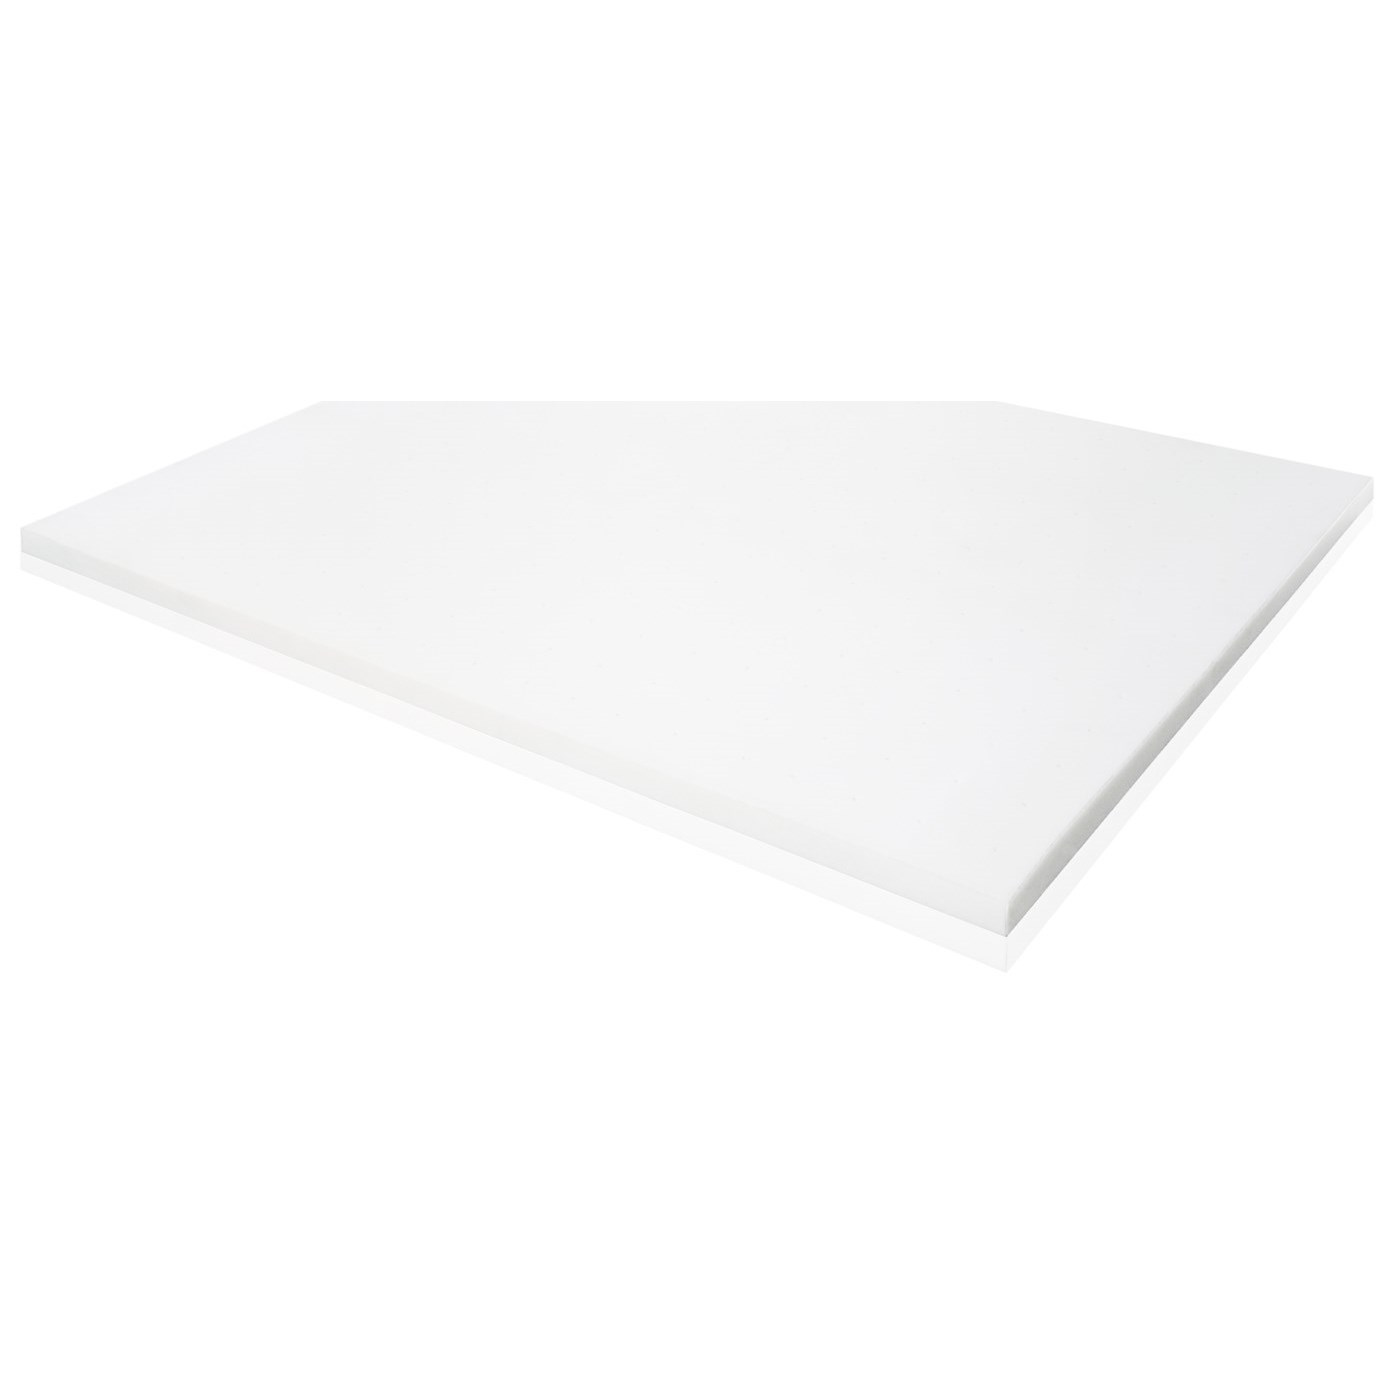 "Memory Foam Twin 2"" Memory Foam Mattress Topper by Malouf at Furniture and ApplianceMart"